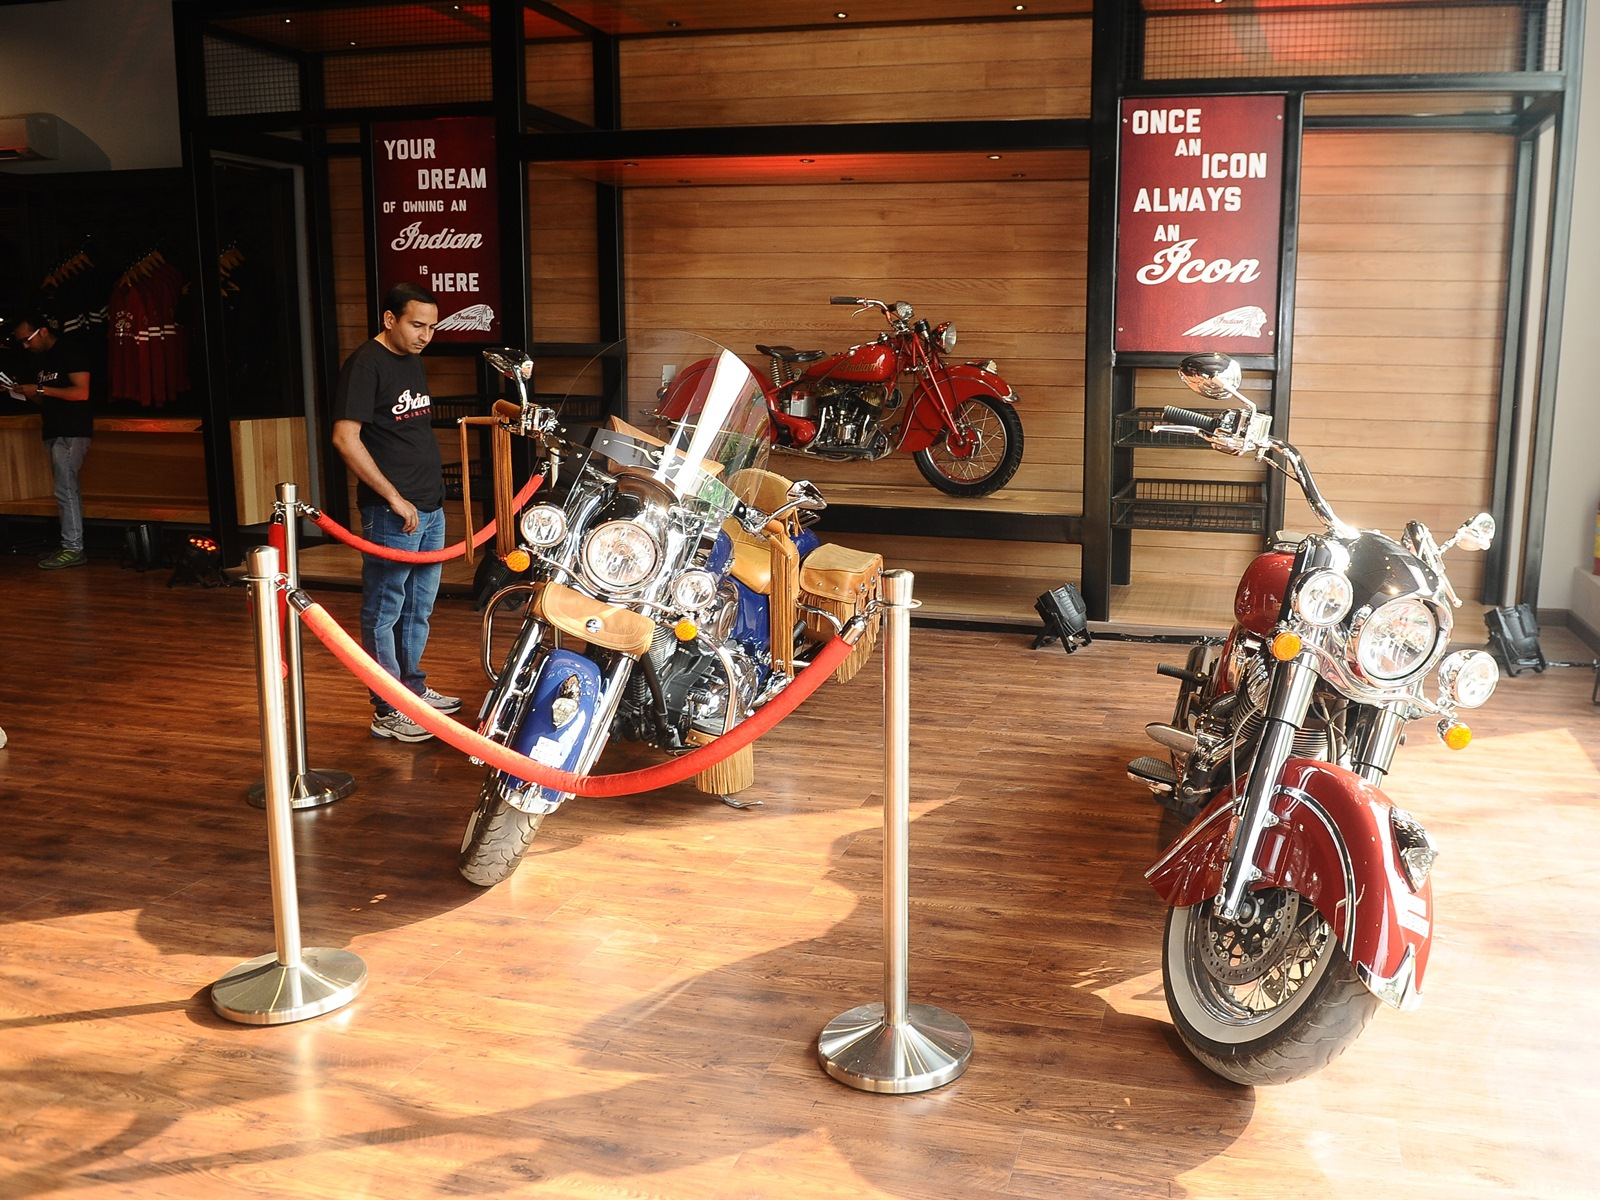 Indian Motorcycle Dealership India showroom interior 1